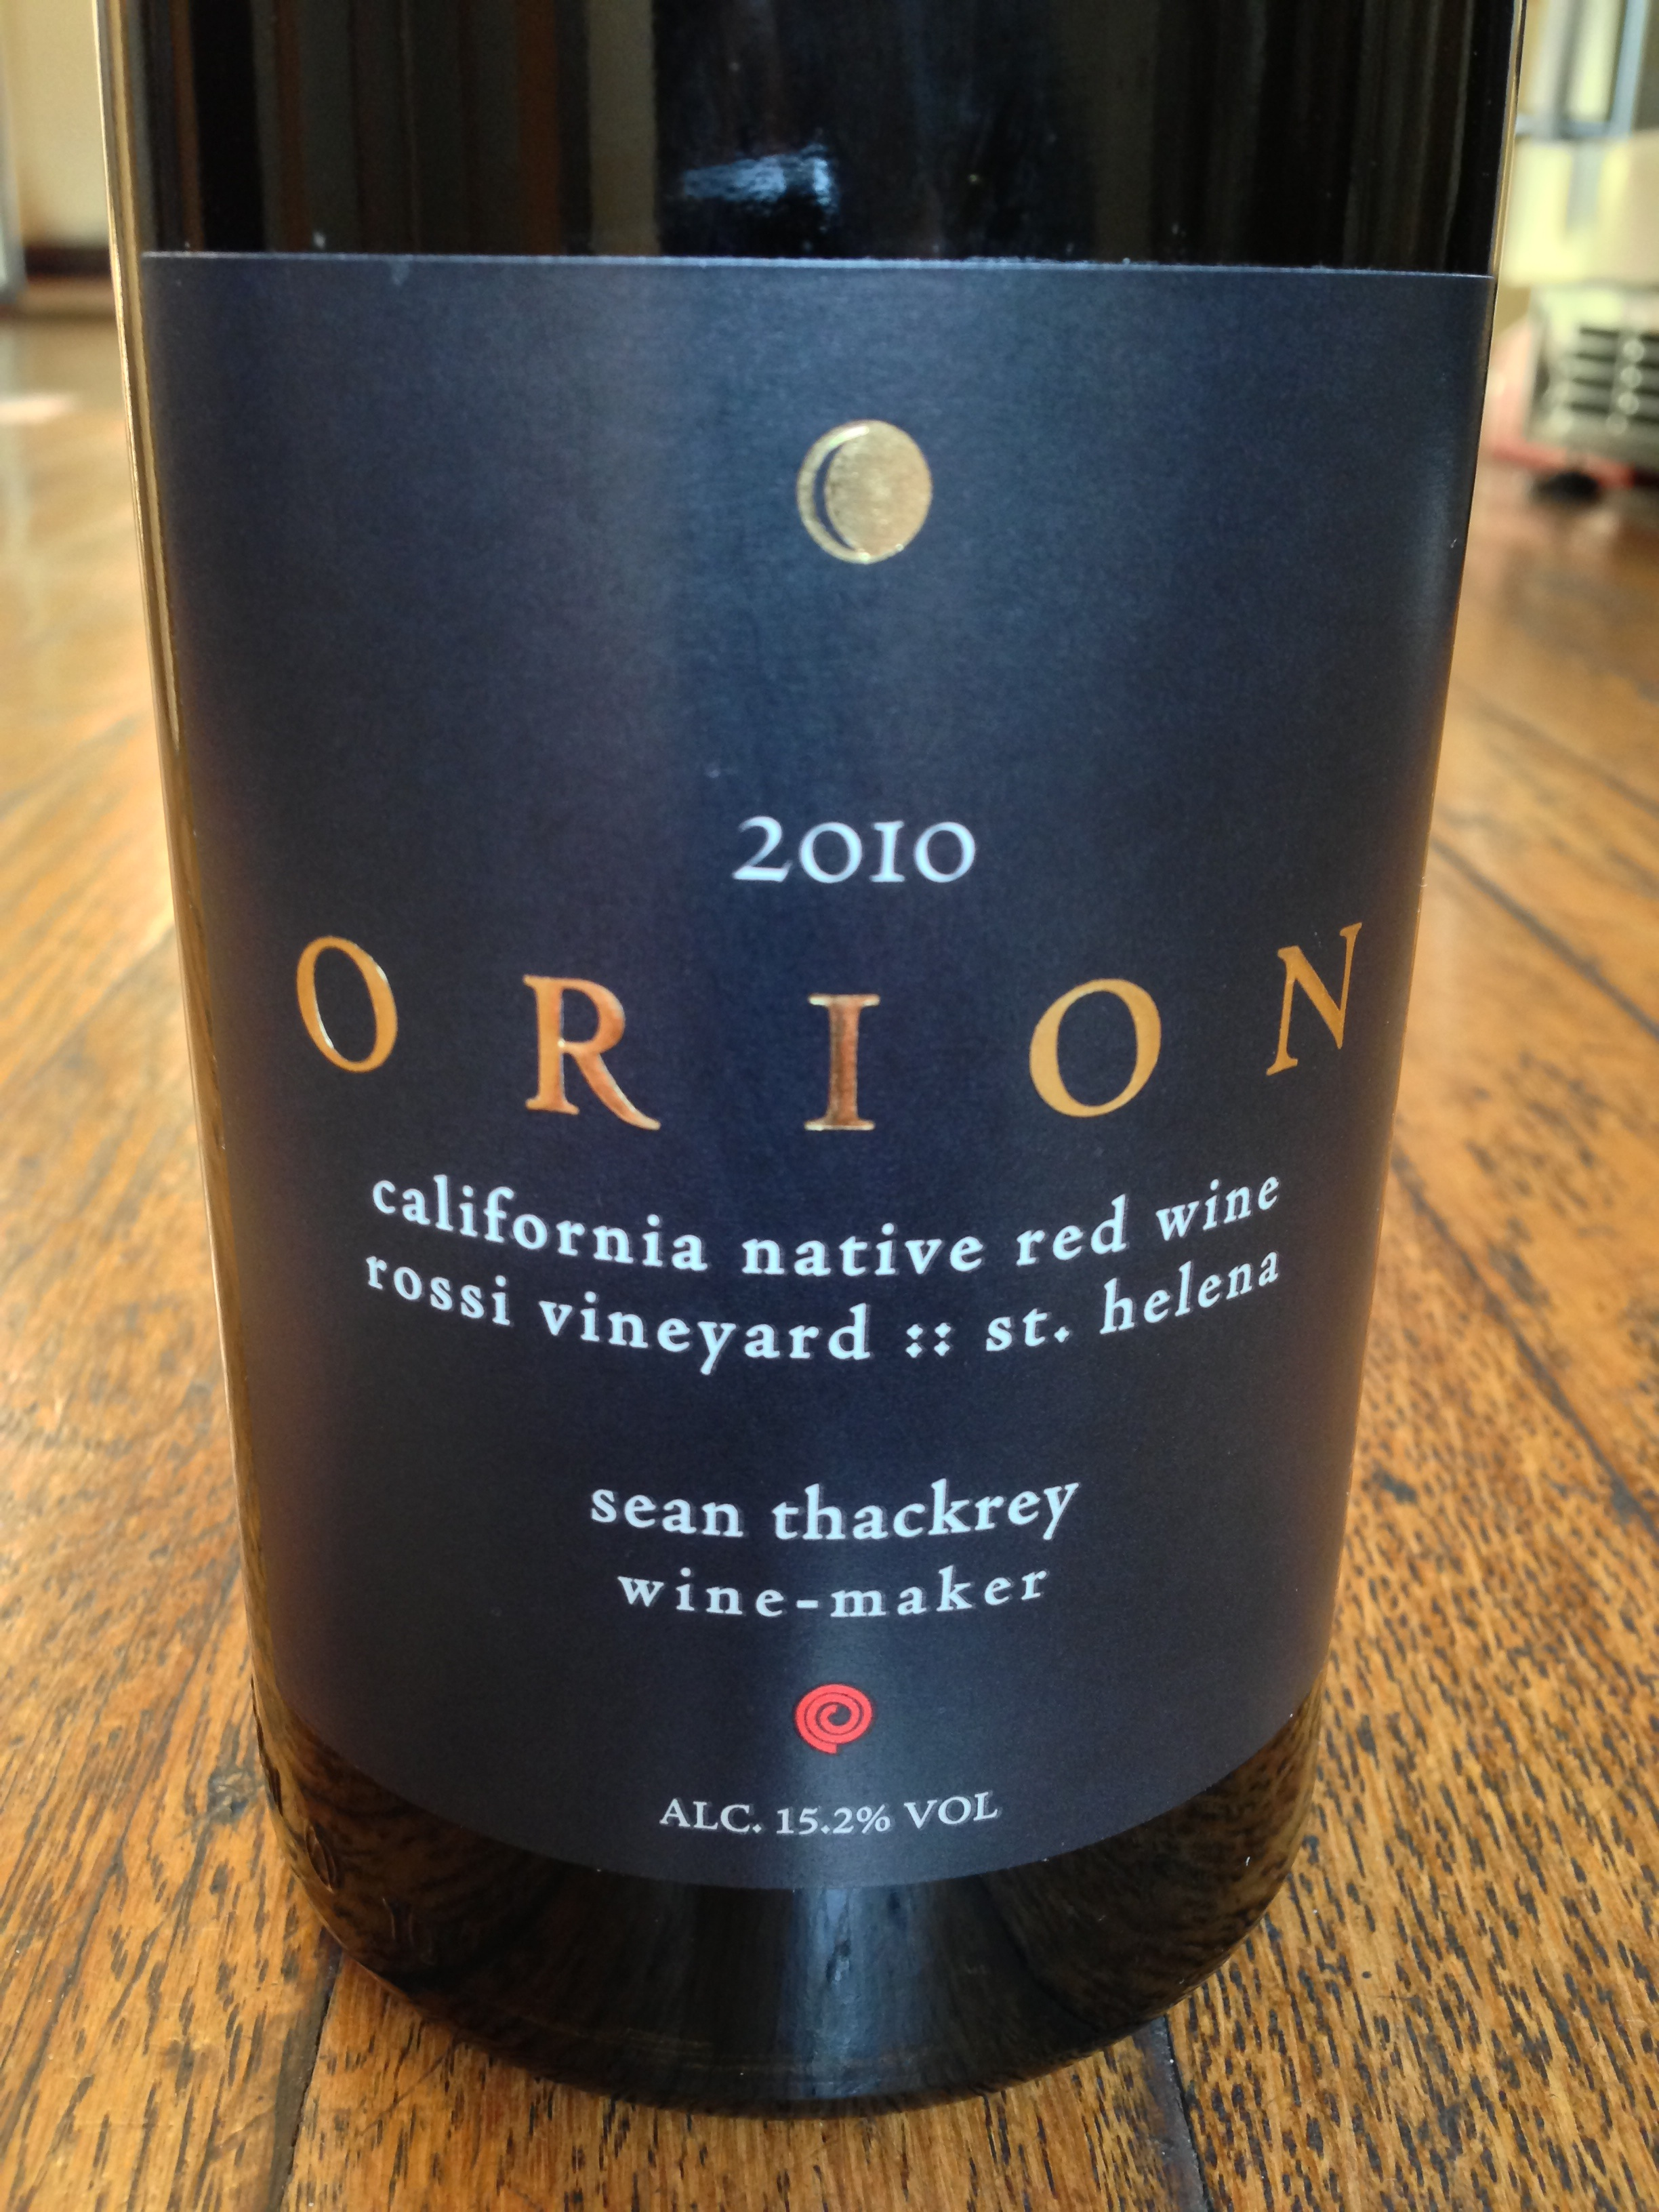 Sean Thackrey Orion 2010 California Naive Wine Rossi Vineyard St Helena - Wine Review